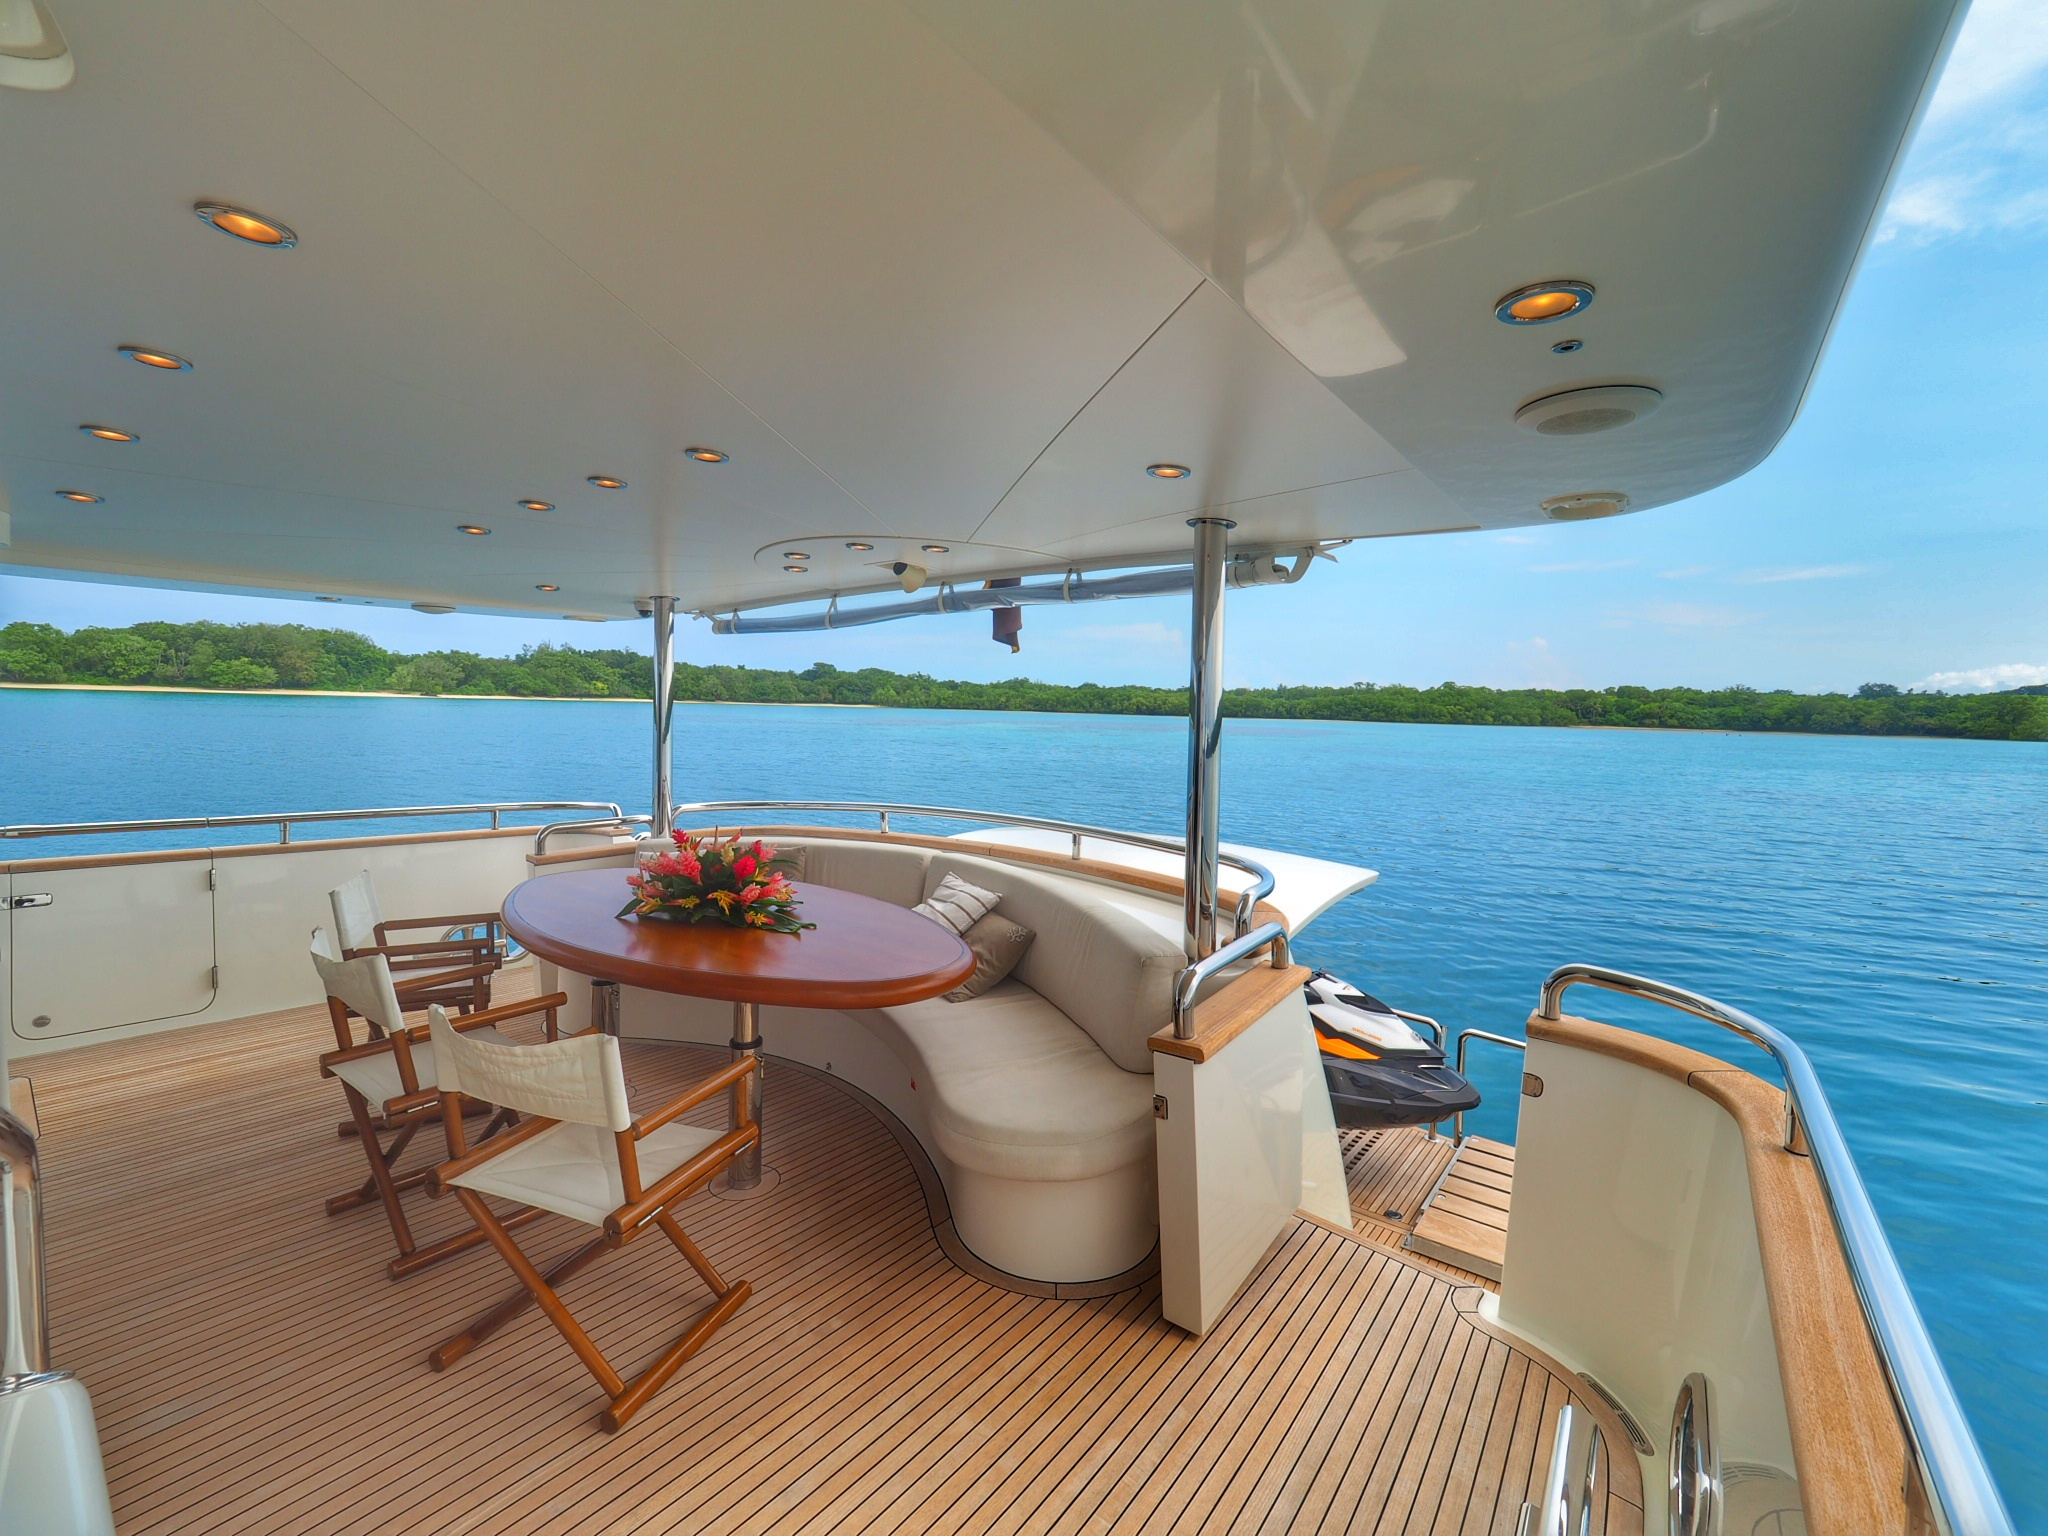 after deck of yacht with blue waters and trees in background